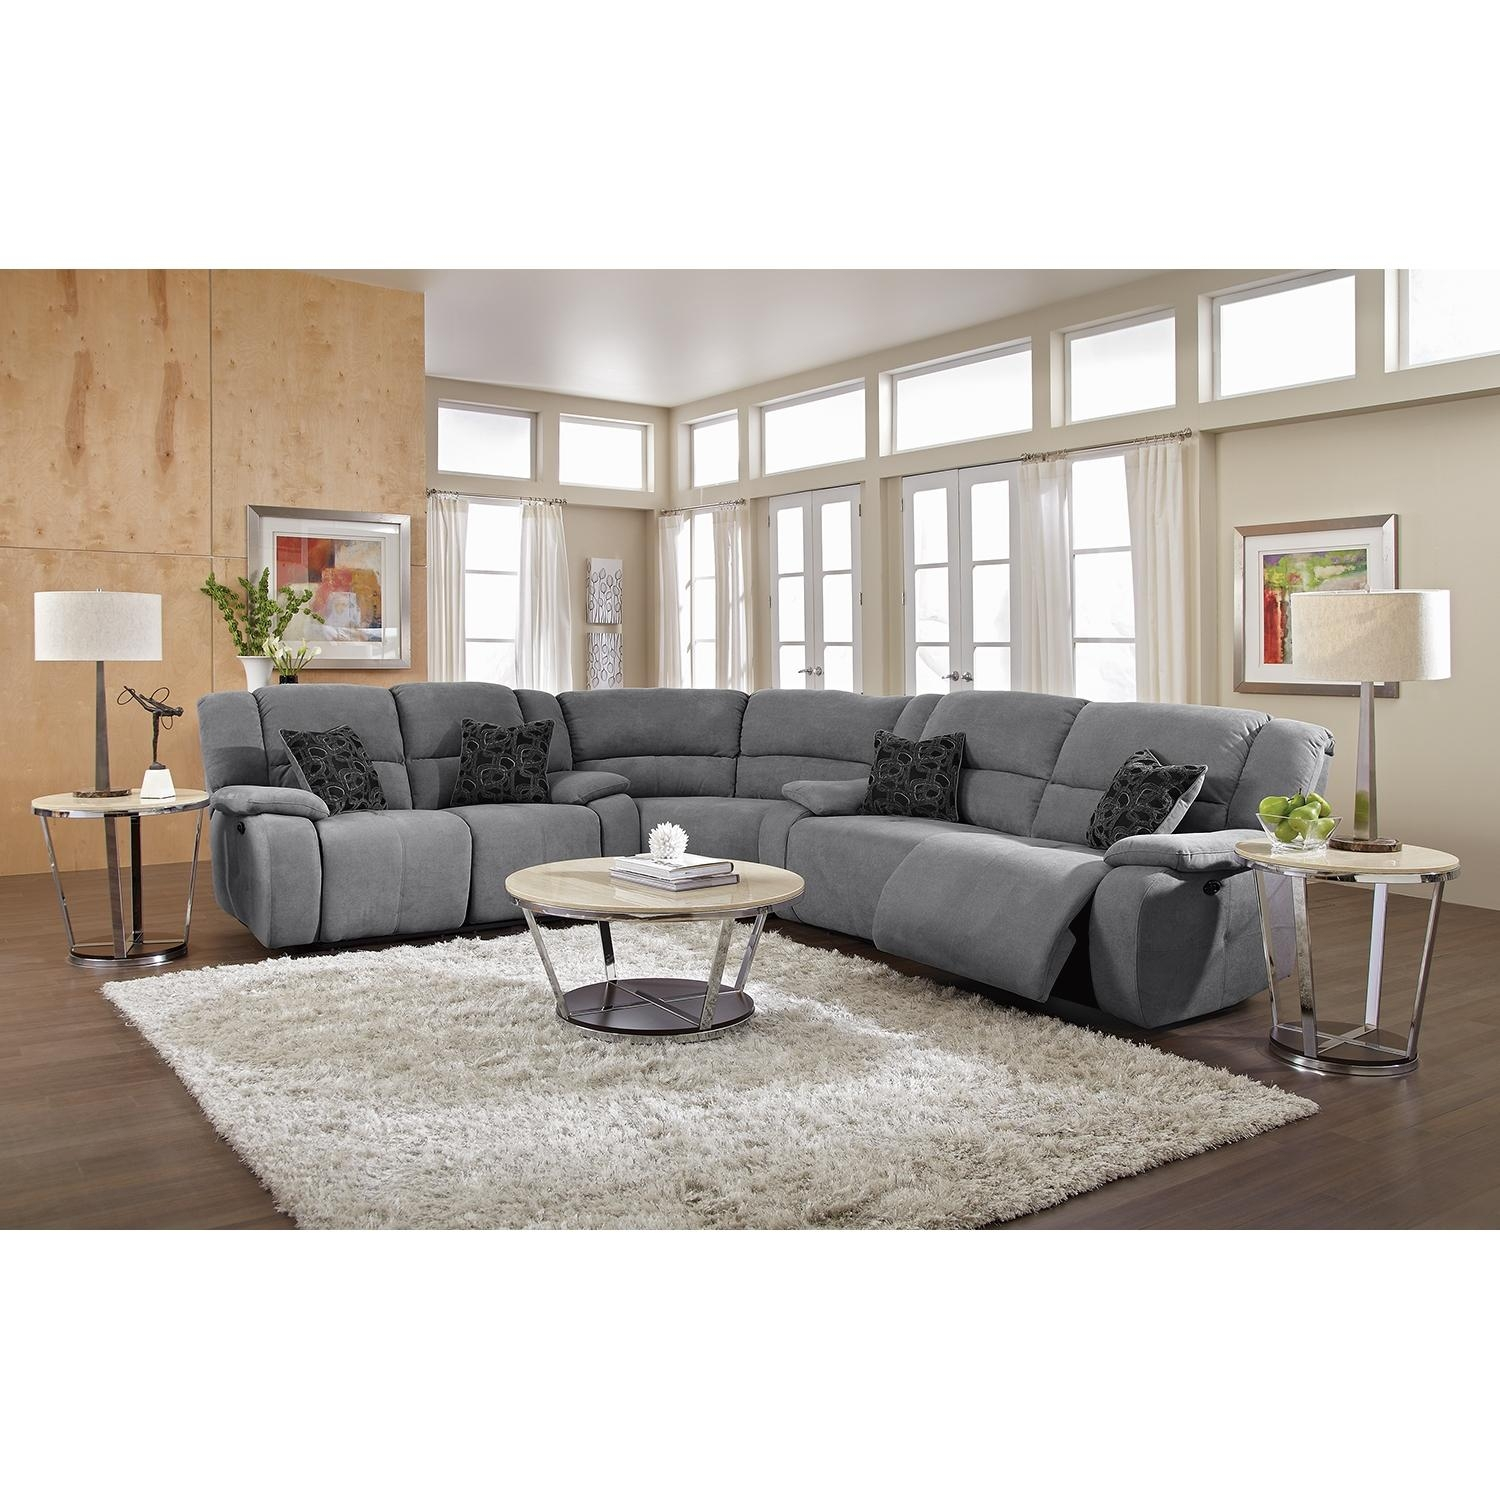 Curved Sofa For Small Spaces: 20 Top Sectional Sofas For Small Spaces With Recliners